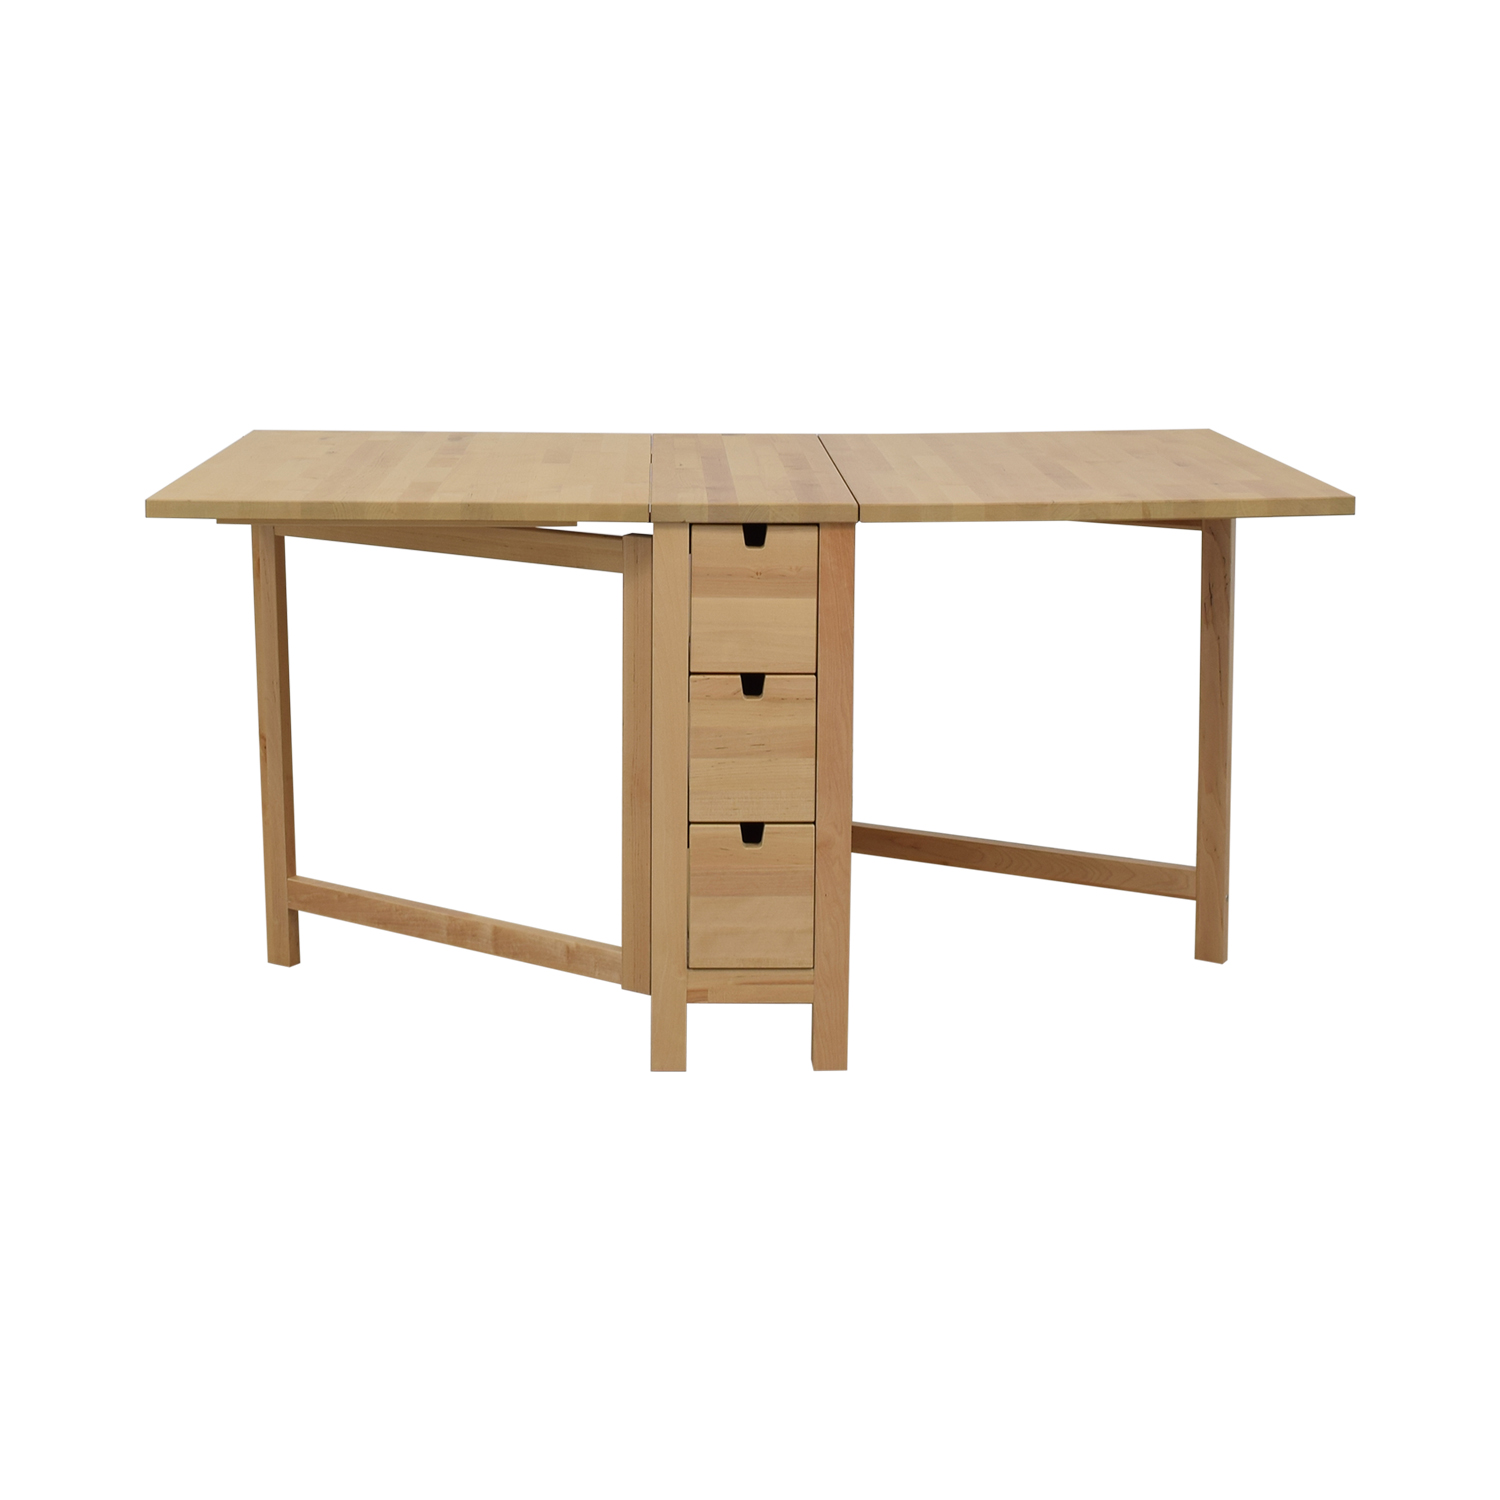 - 58% OFF - IKEA IKEA Norden Gateleg Folding Table With Storage